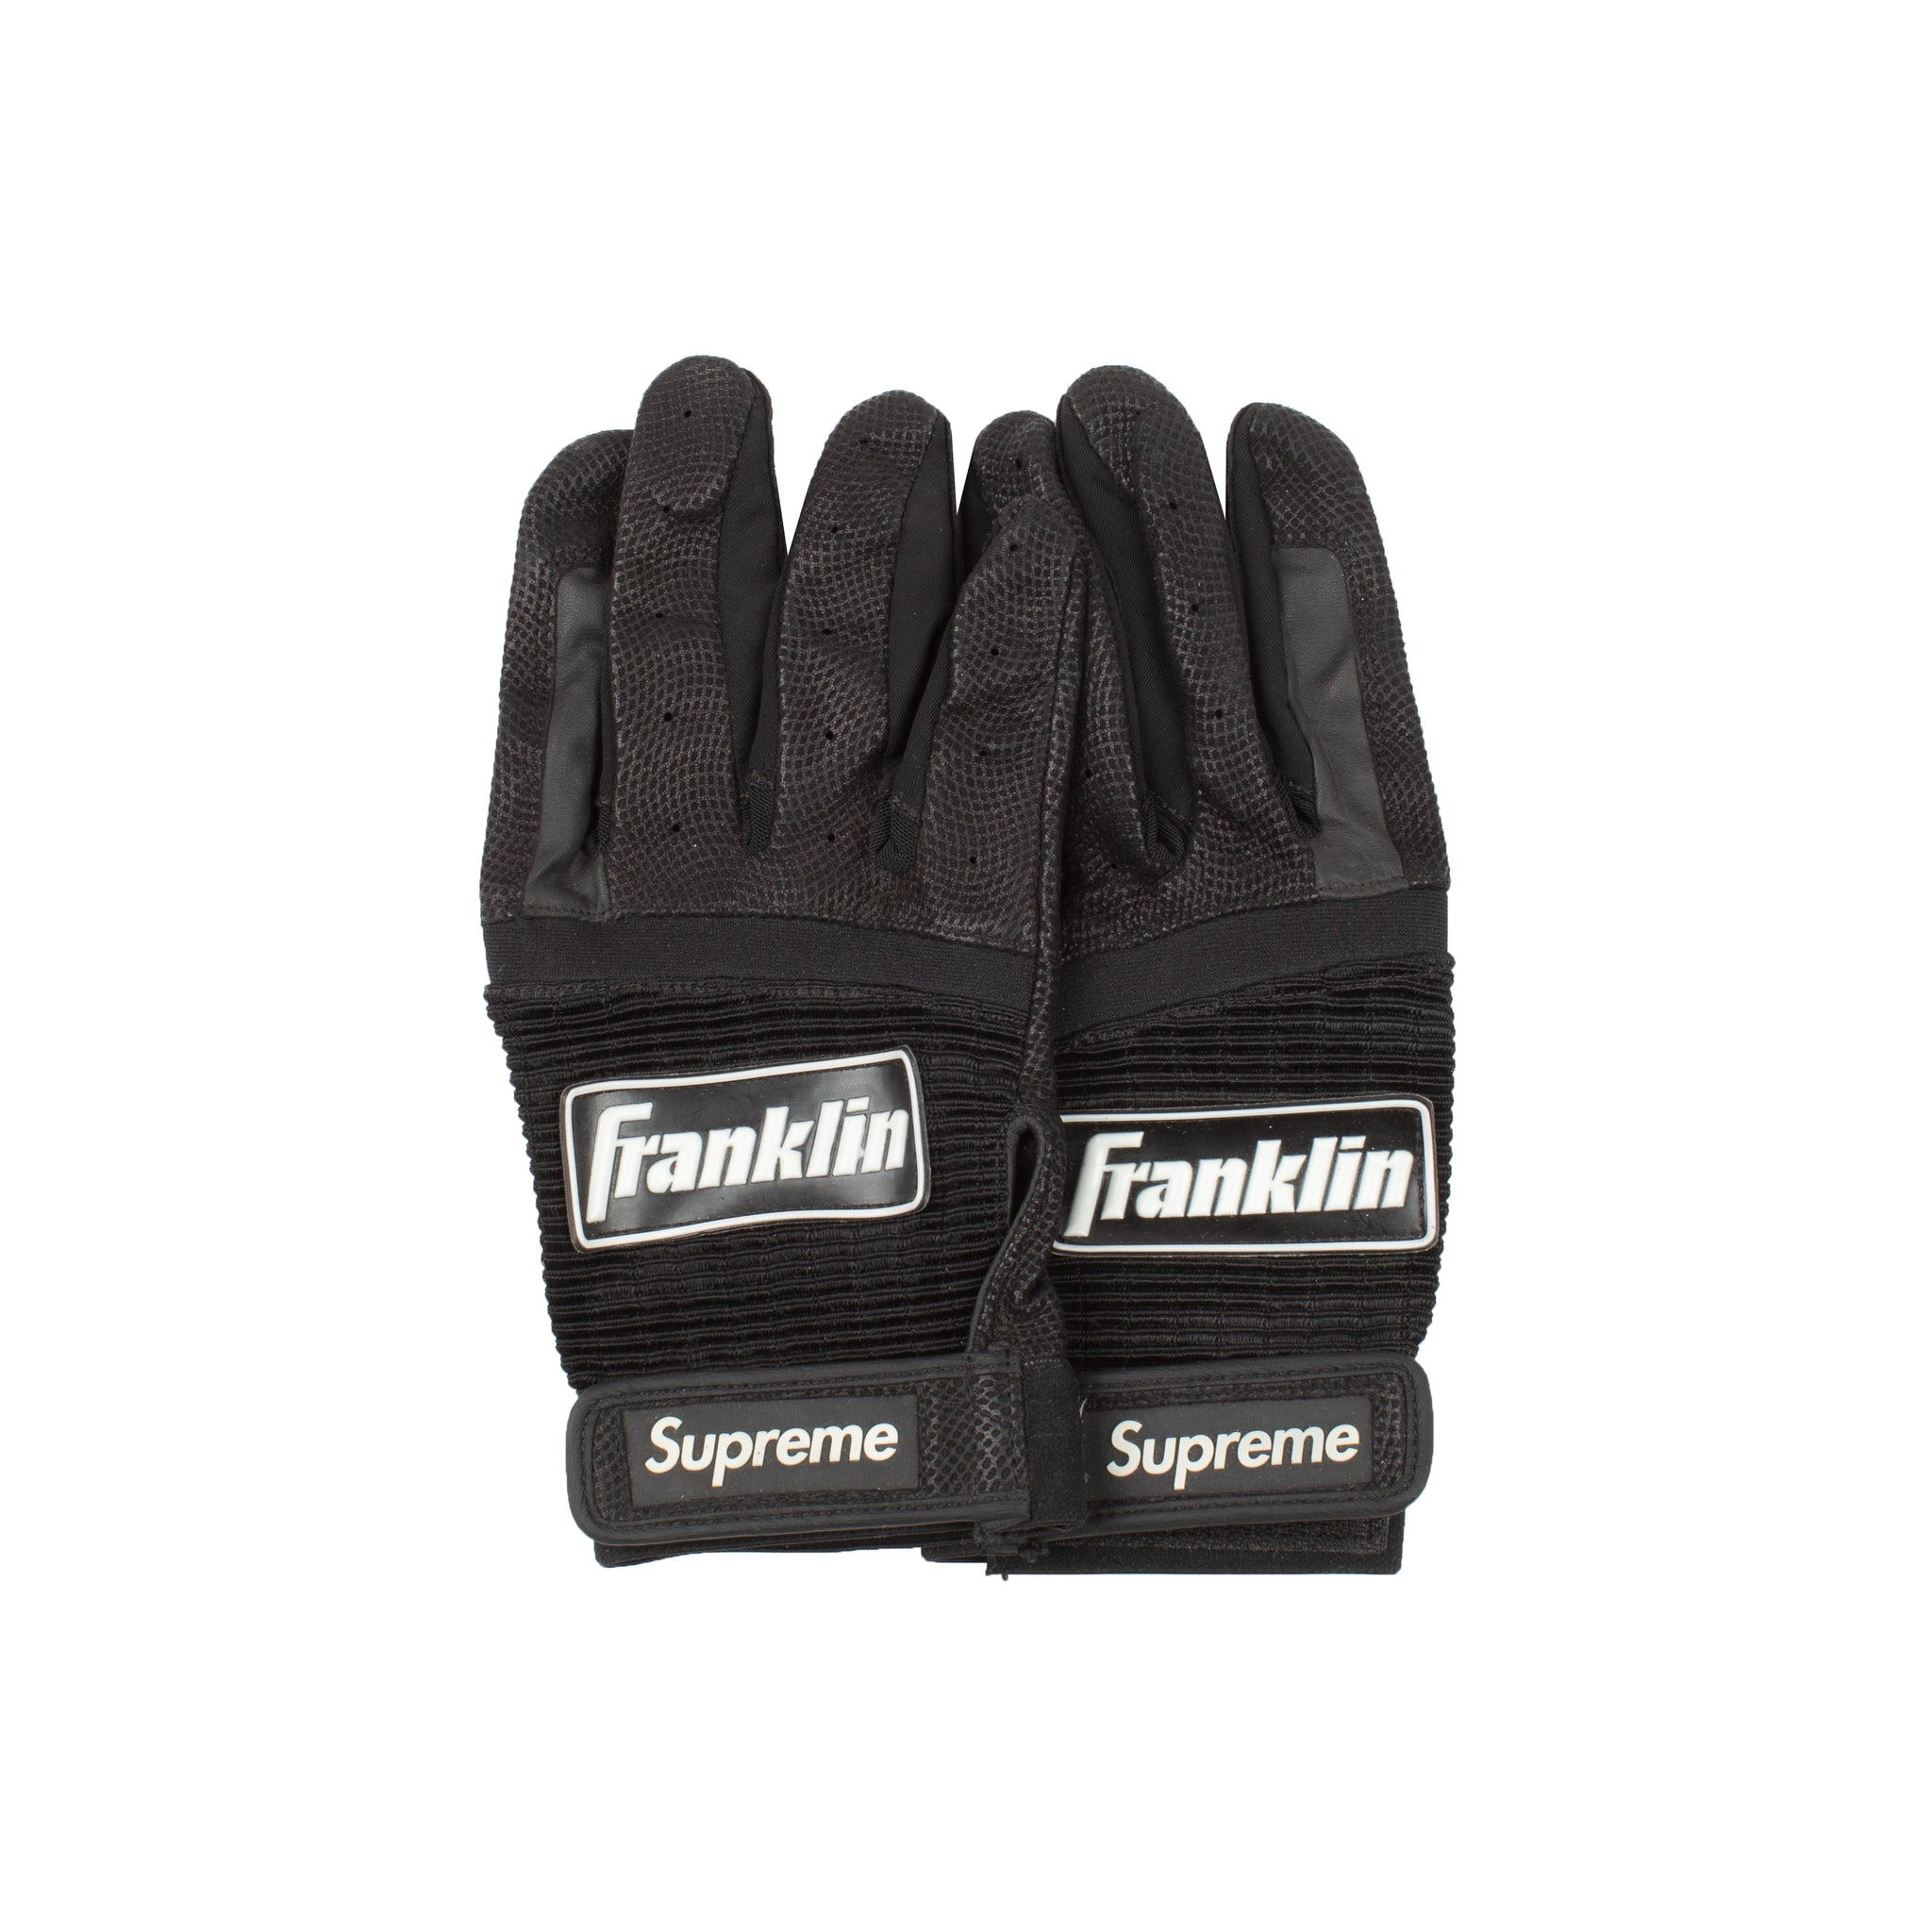 Supreme Black Franklin Batting Gloves